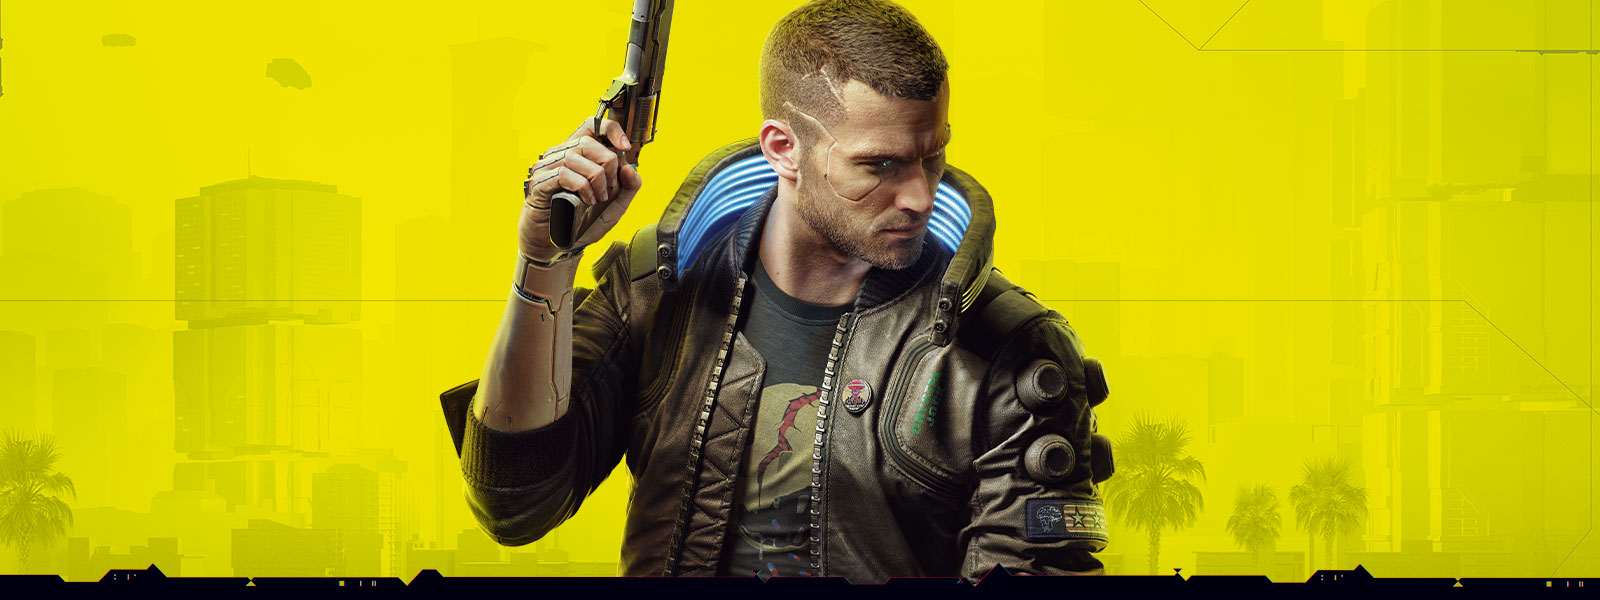 V from cyberpunk 2077 holding up a handgun in the air